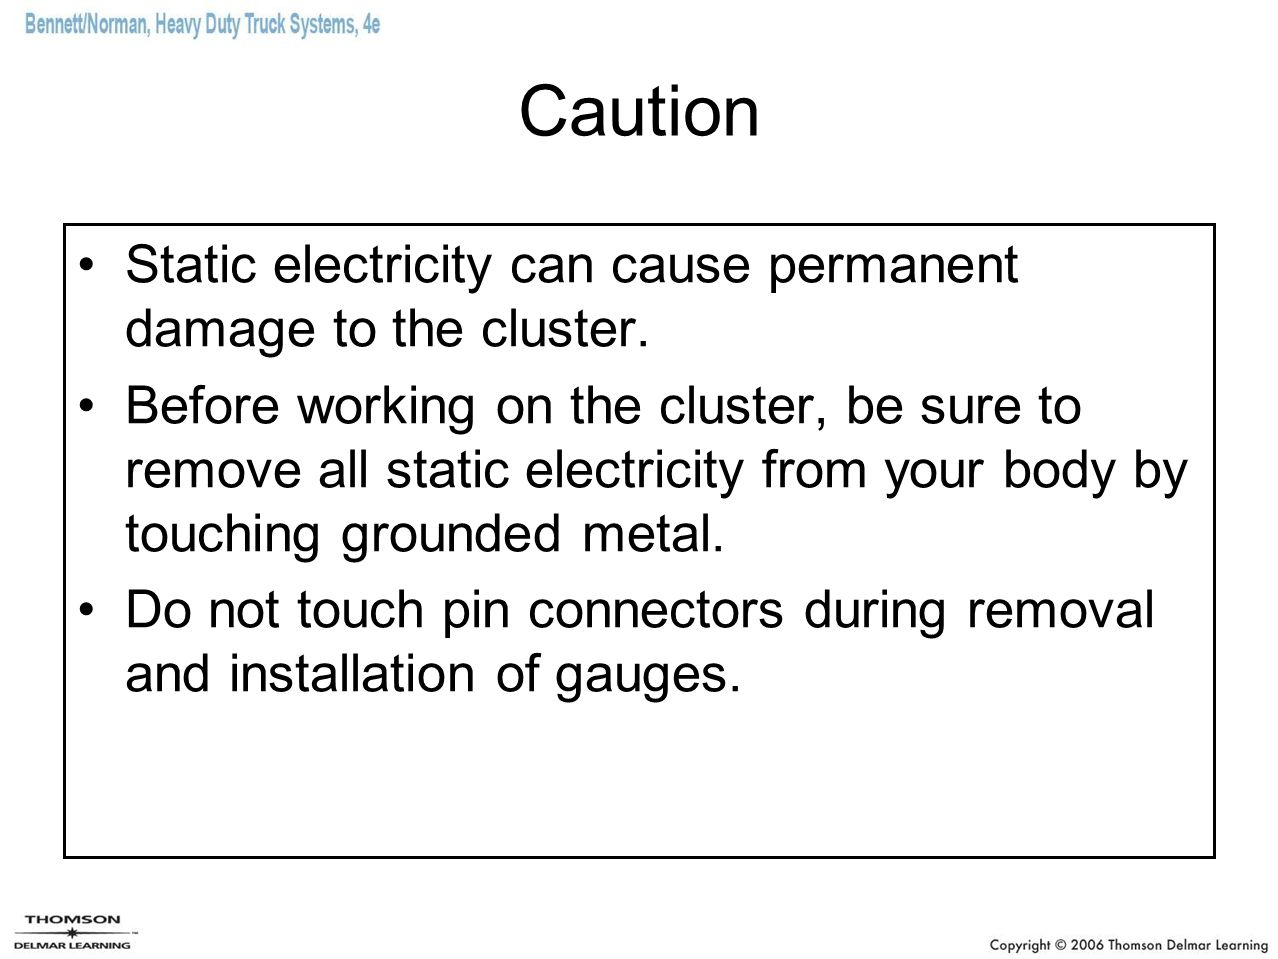 Caution Static electricity can cause permanent damage to the cluster. Before working on the cluster, be sure to remove all static electricity from you